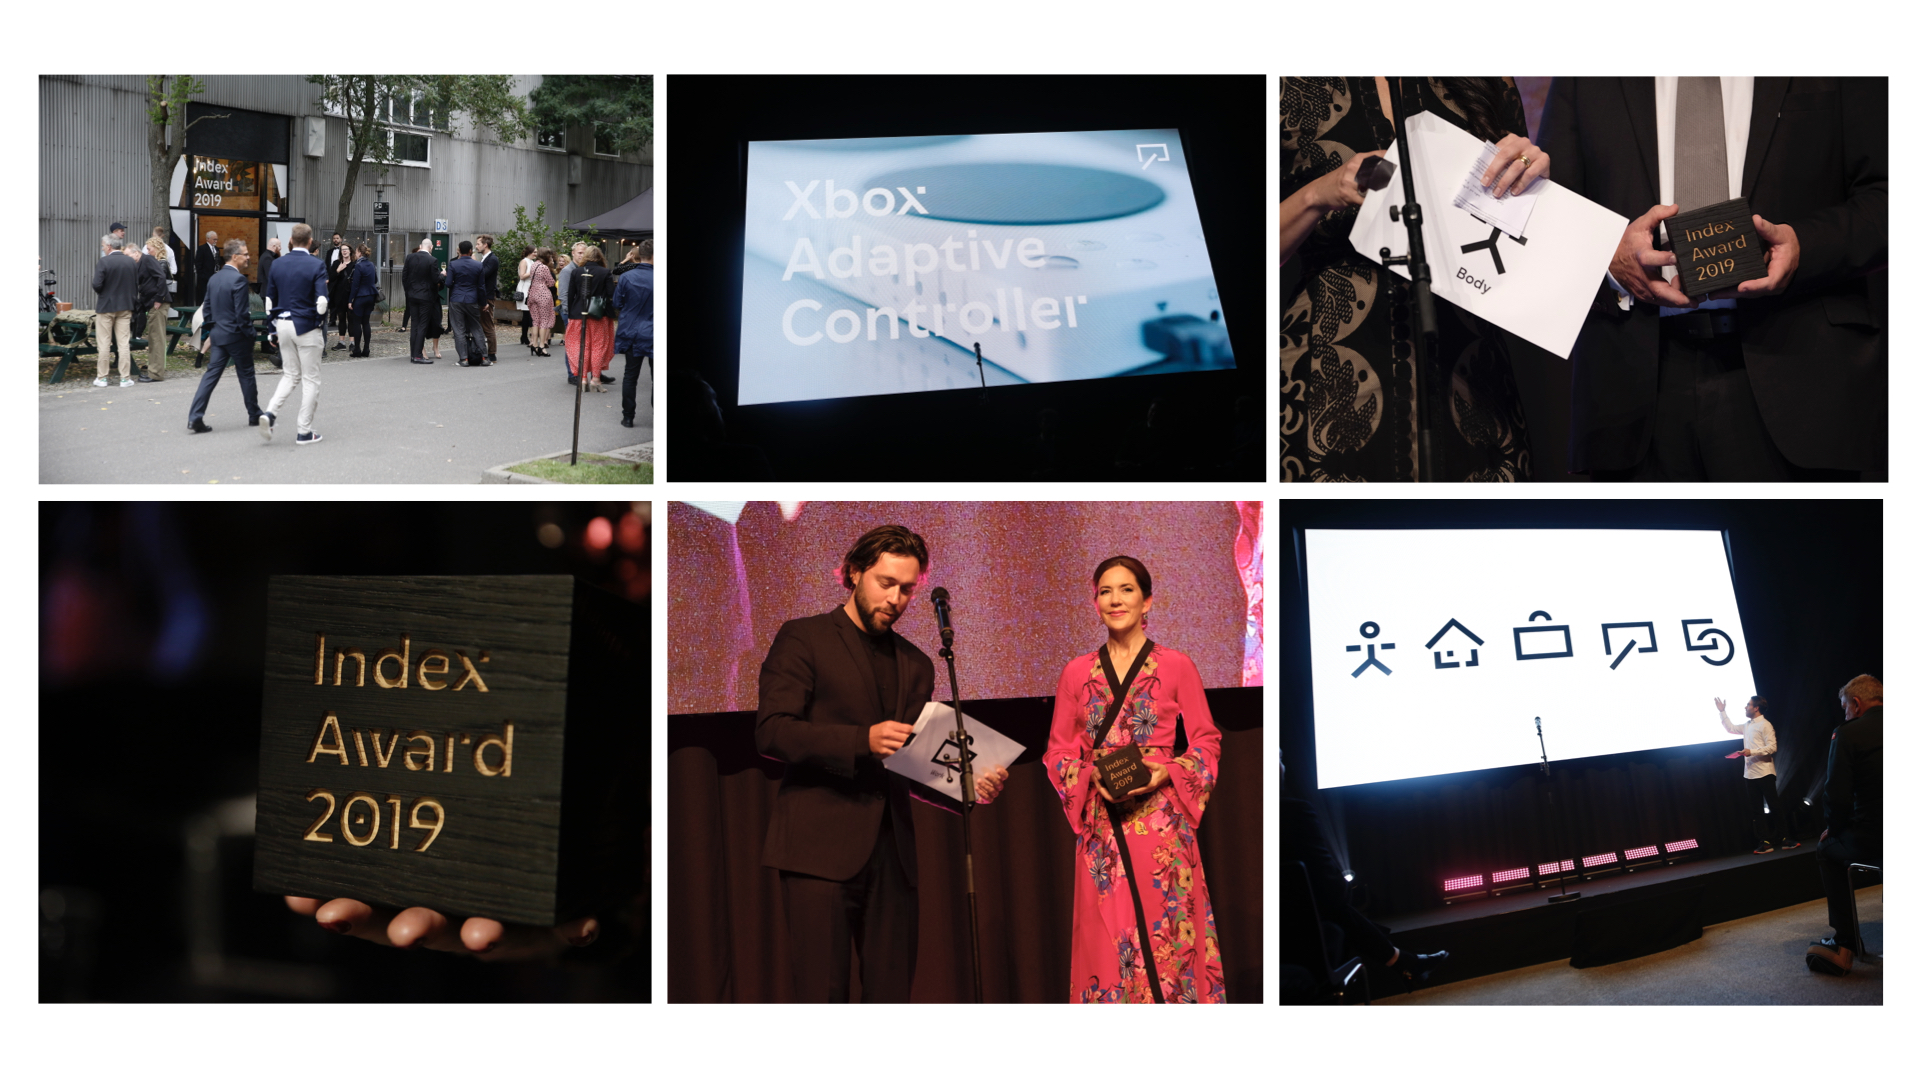 a collage of photos from the Index award